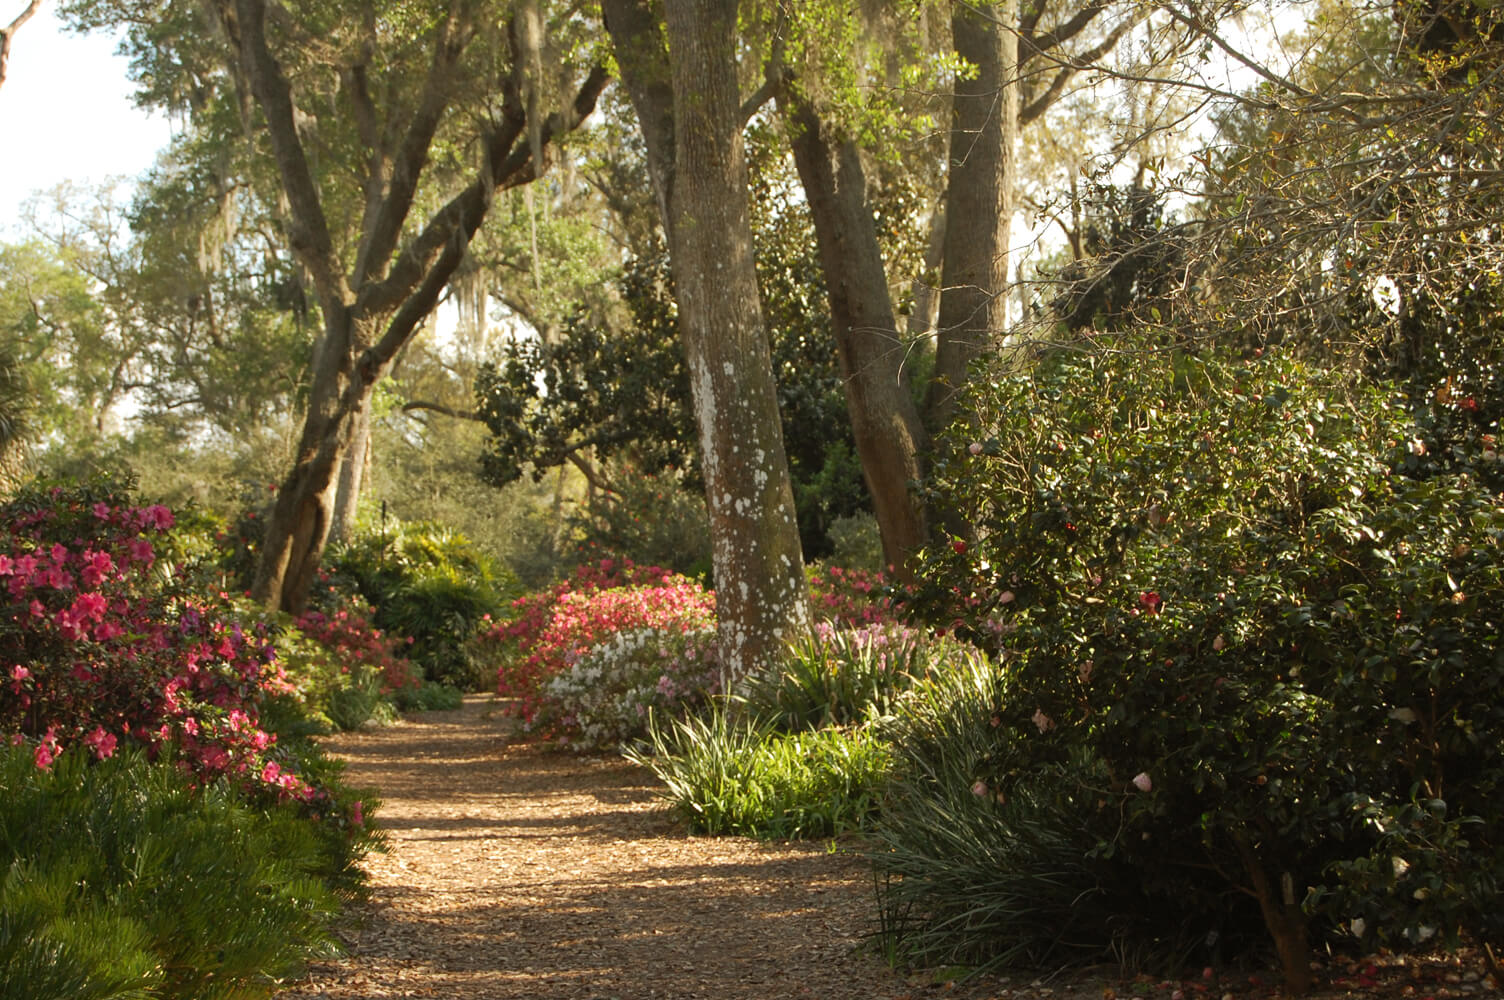 North Walk during azalea and camellia peak bloom